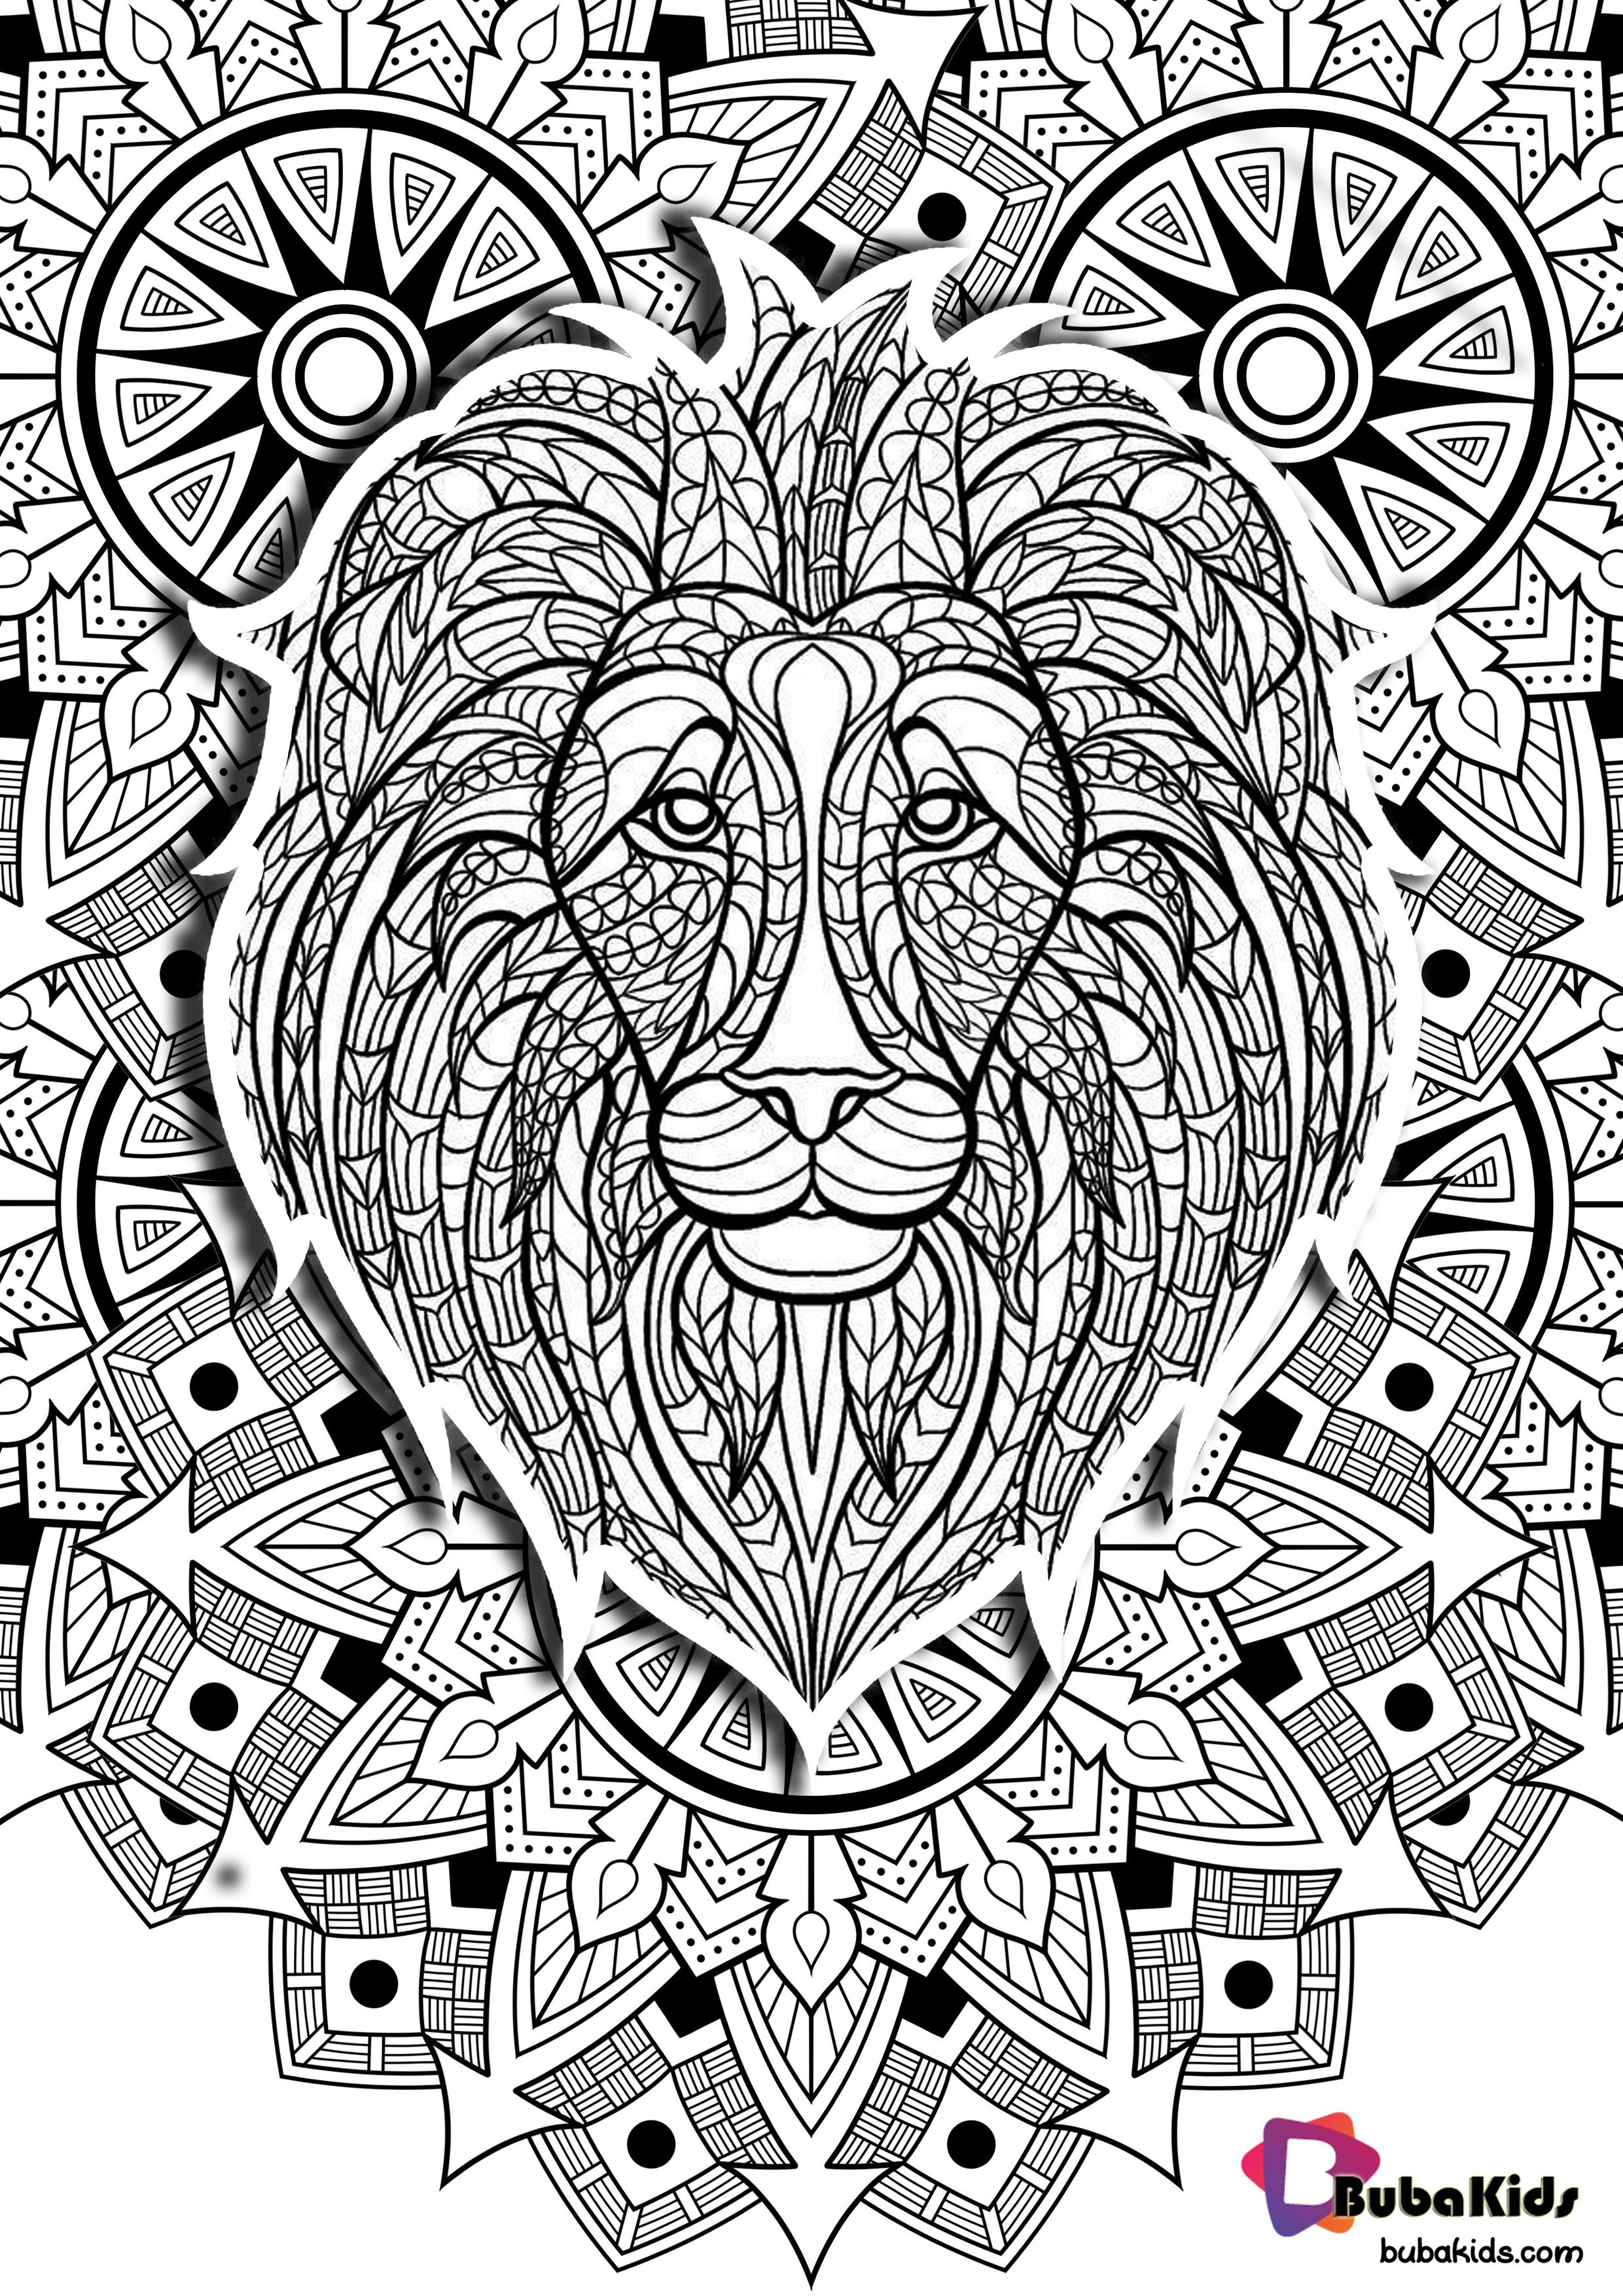 Hoola Hoopla Let S Coloring Mandala With Lion King Special Coloring Pages Coloringpages Lion Lion Coloring Pages Mandala Coloring Pages Coloring Pages